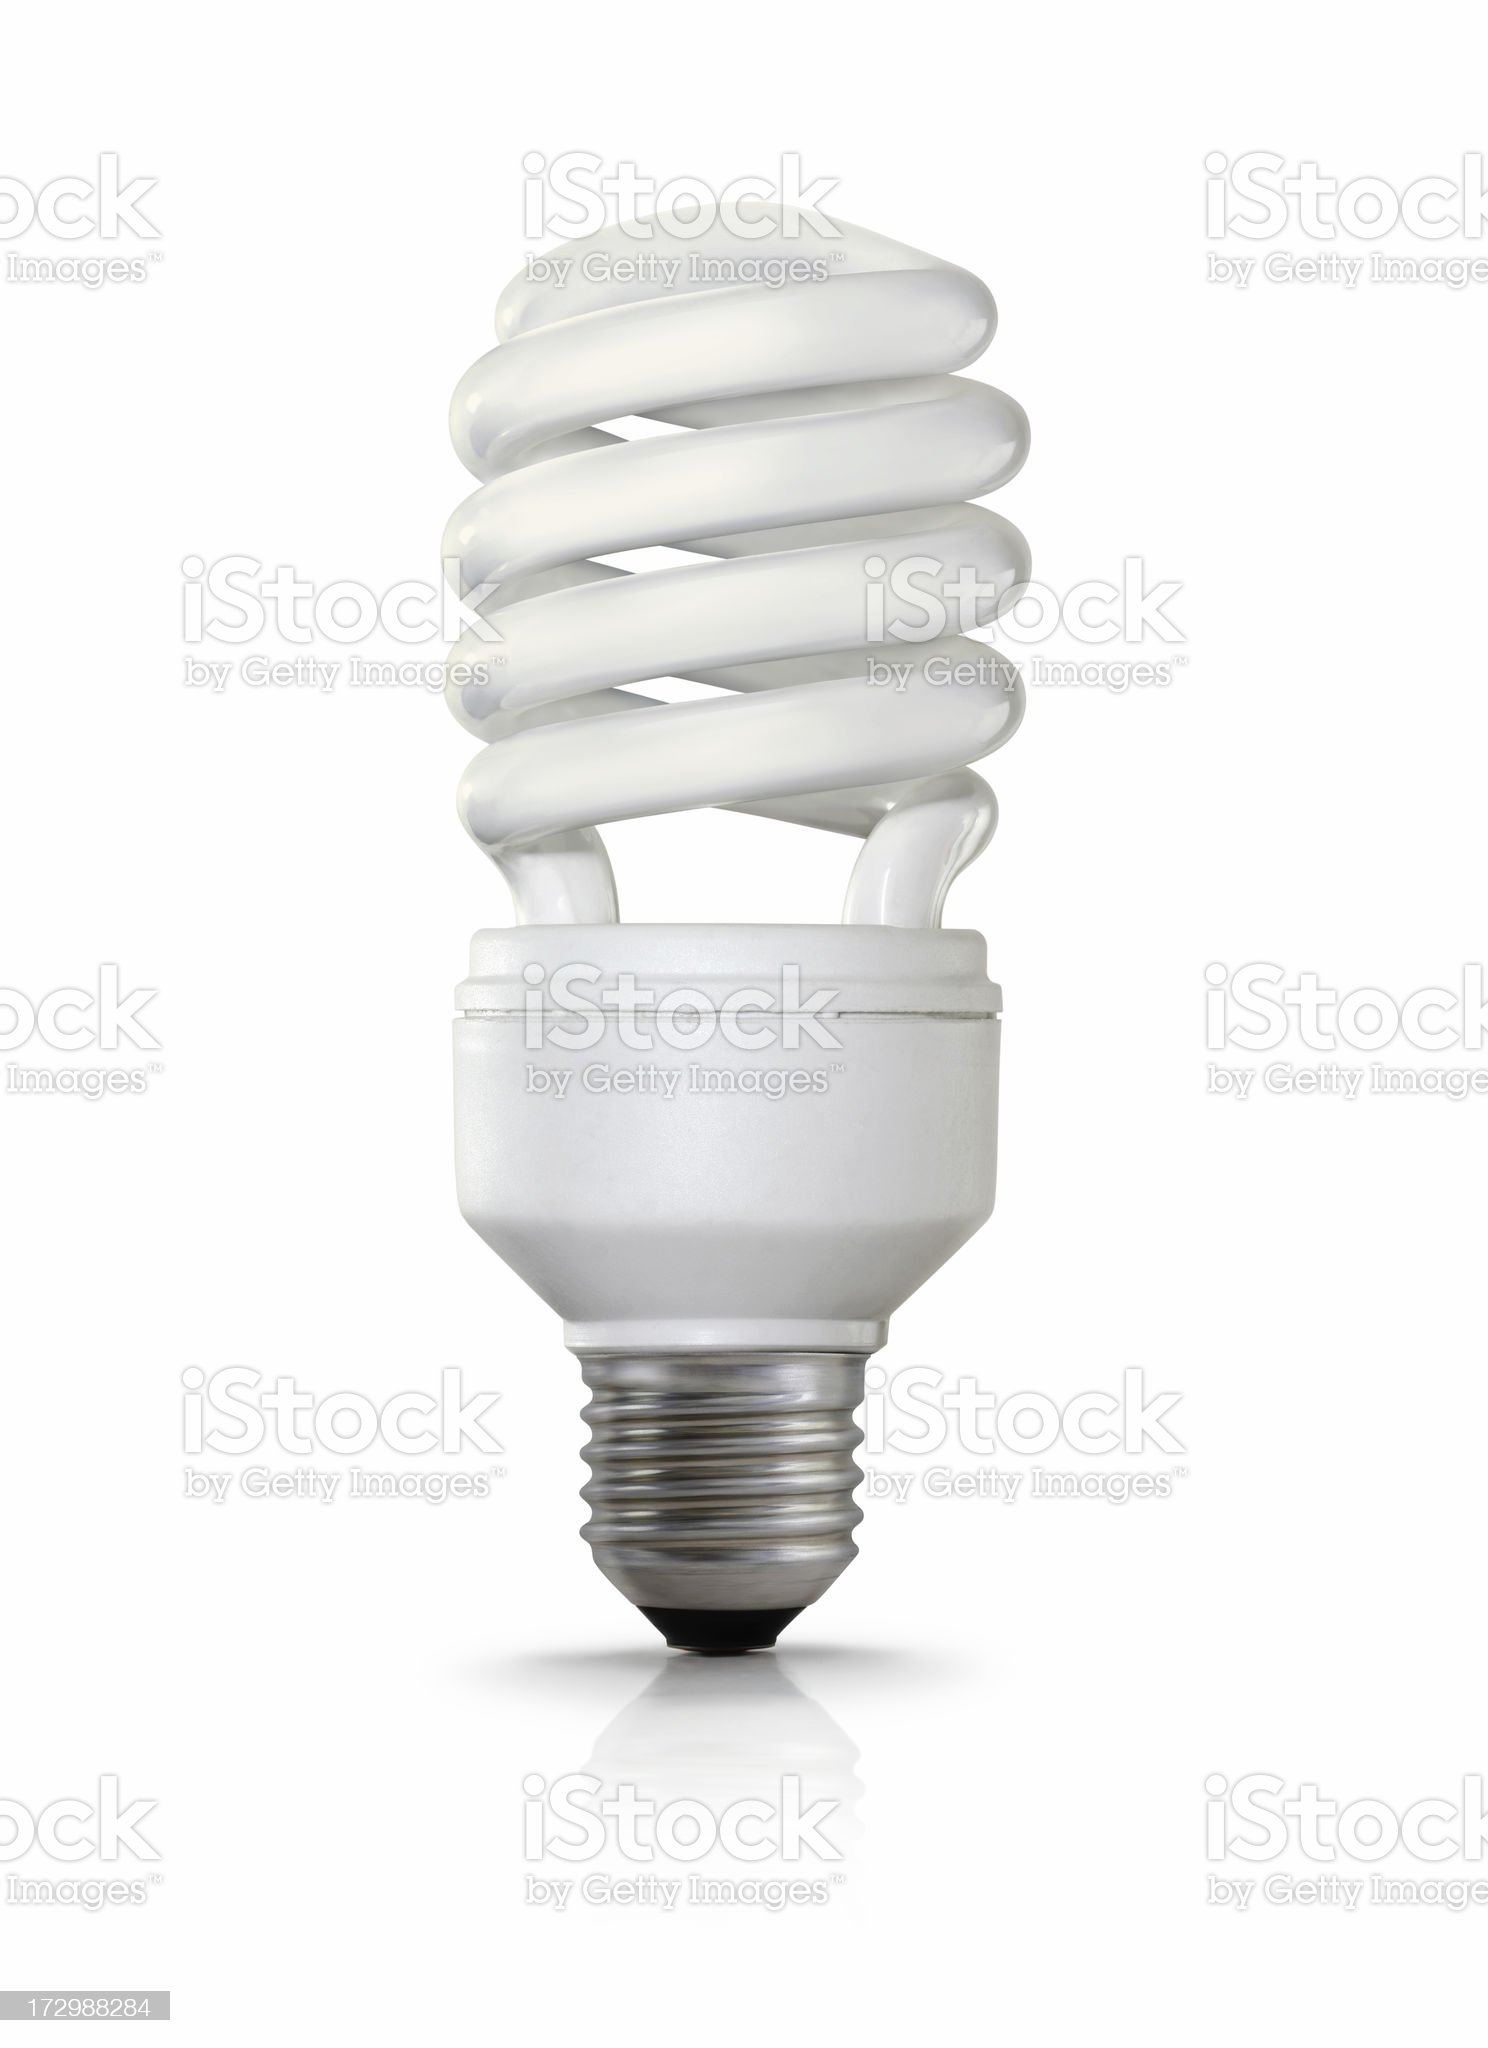 Fluorescent light bulb with a screw fitting royalty-free stock photo